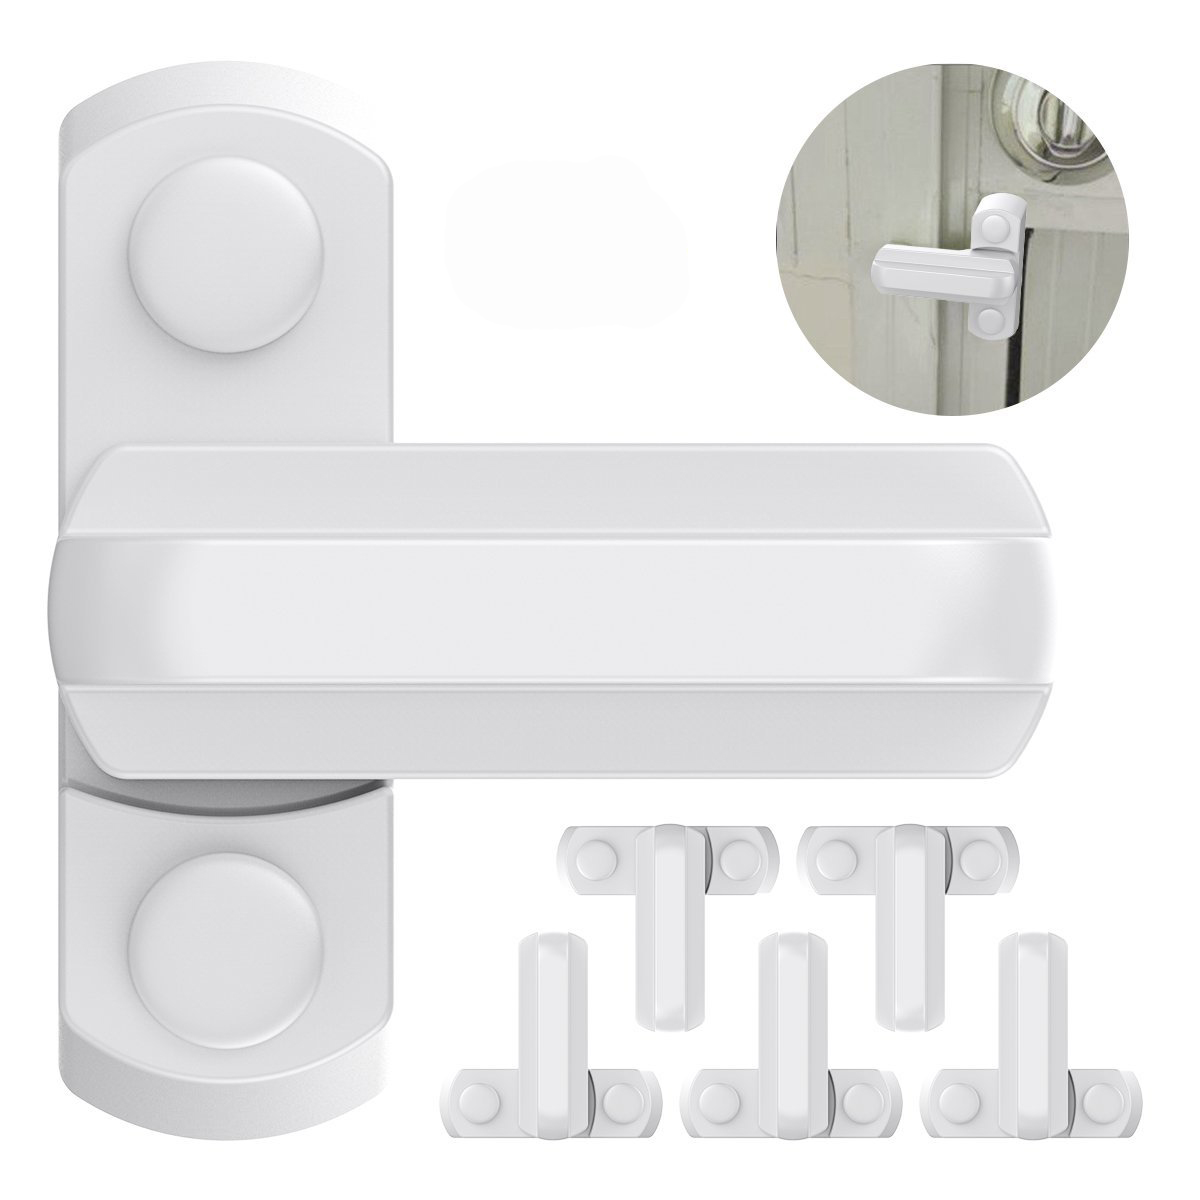 6 pcs White Zinc Alloy Security Window Lock T Shape Window/Door handle jammer Sash Lock Handle Latch Child Protection